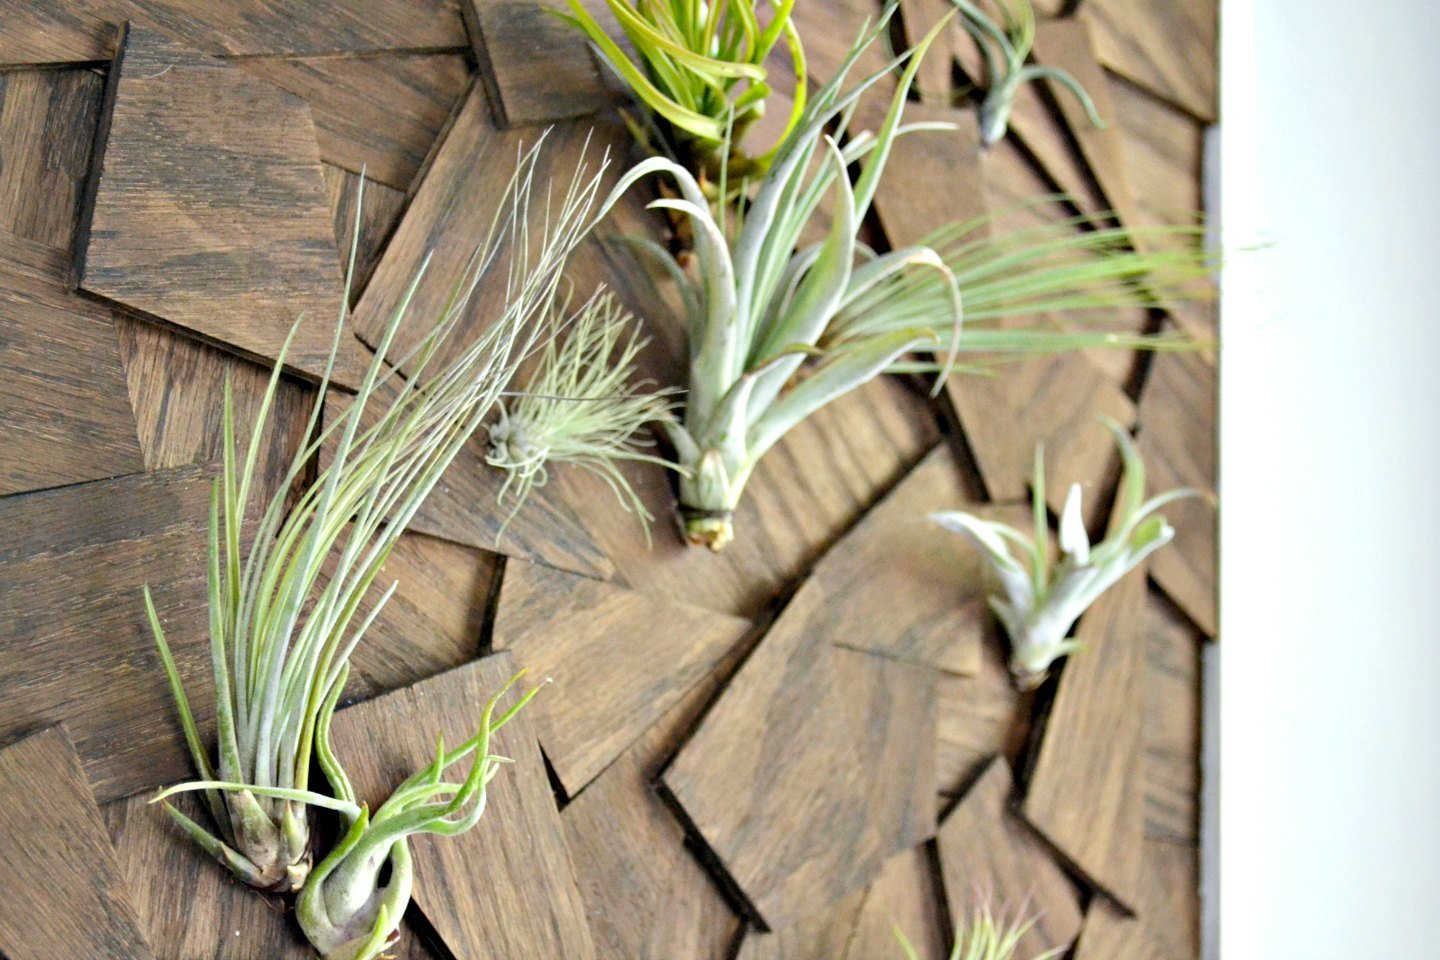 All the little air plants look wonderful in this easy DIY wall hanging made from scrap wood.